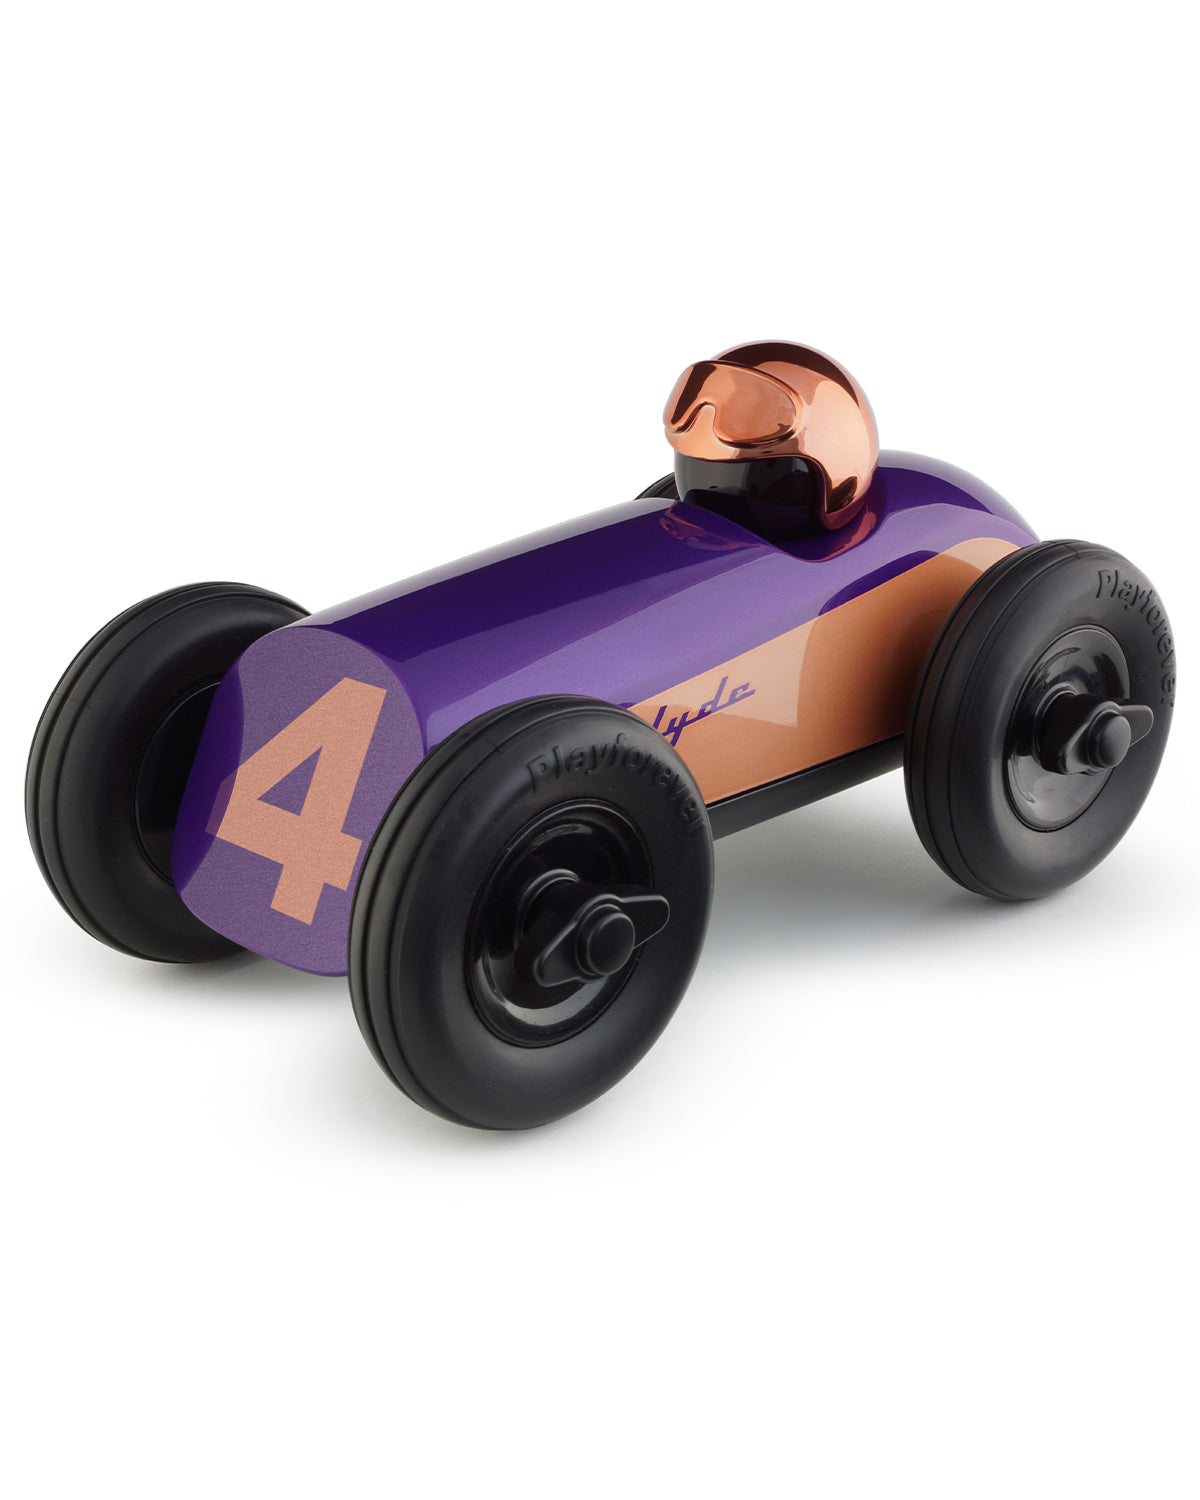 Playforever Car MIDI CLYDE Purple w/ Copper Helmet